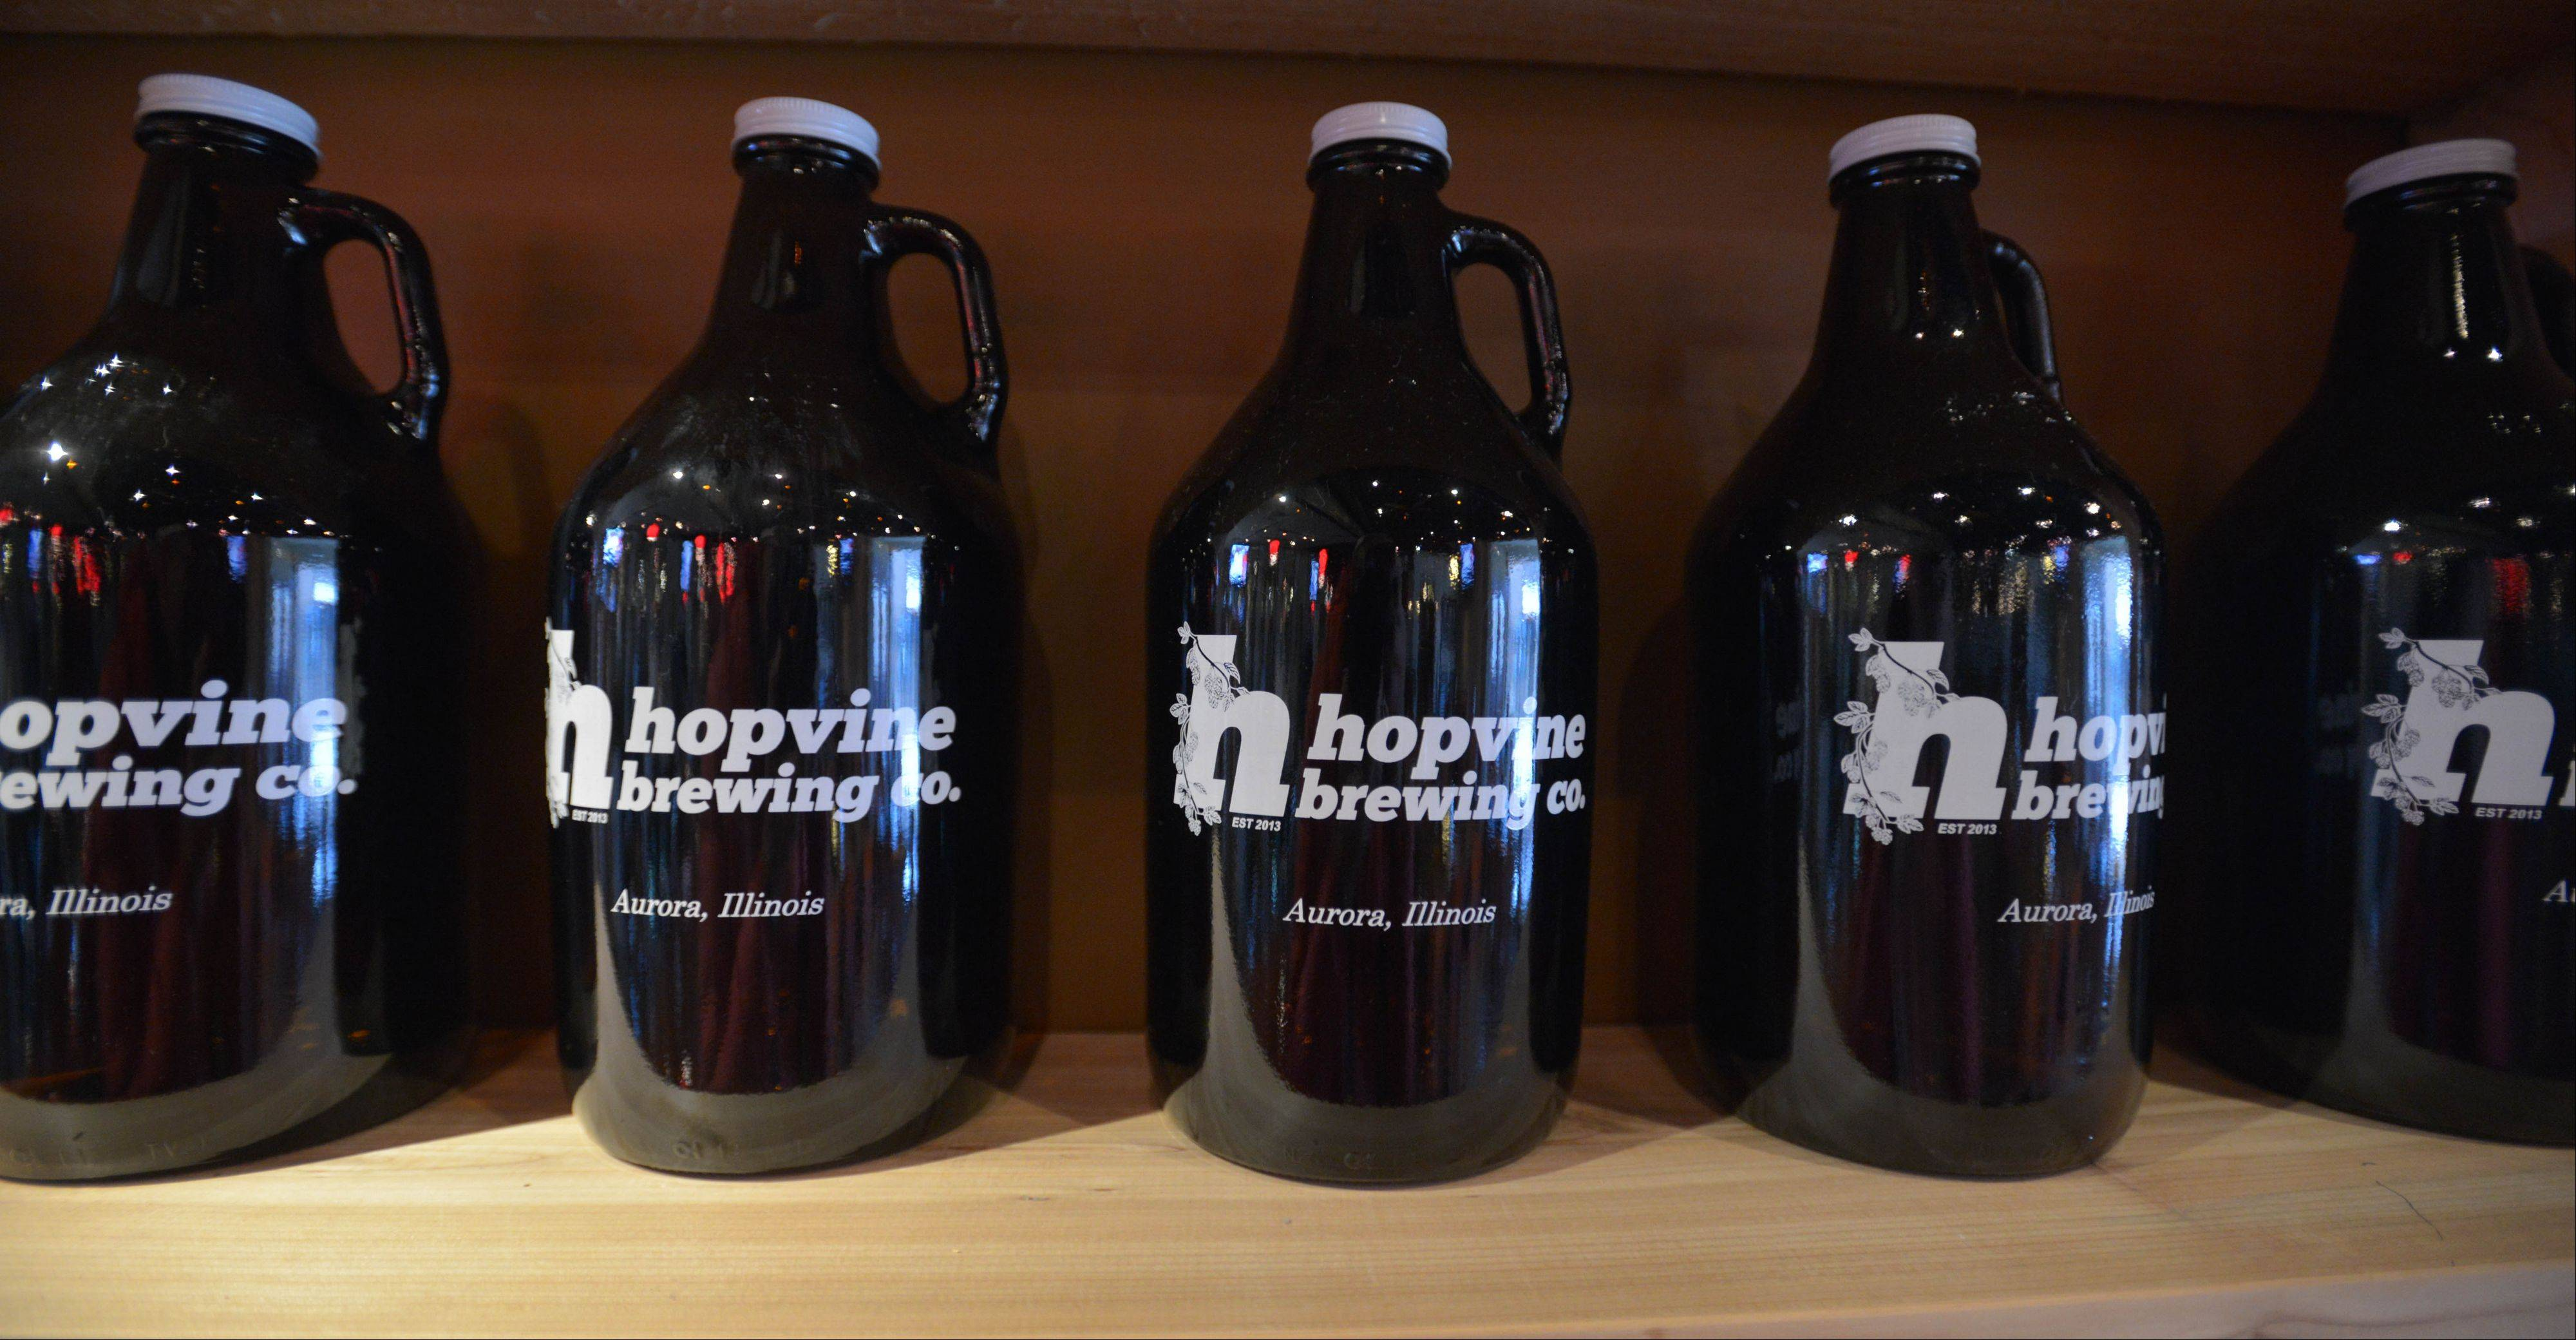 Hopvine Brewing Co. brews a variety of beers on-site.